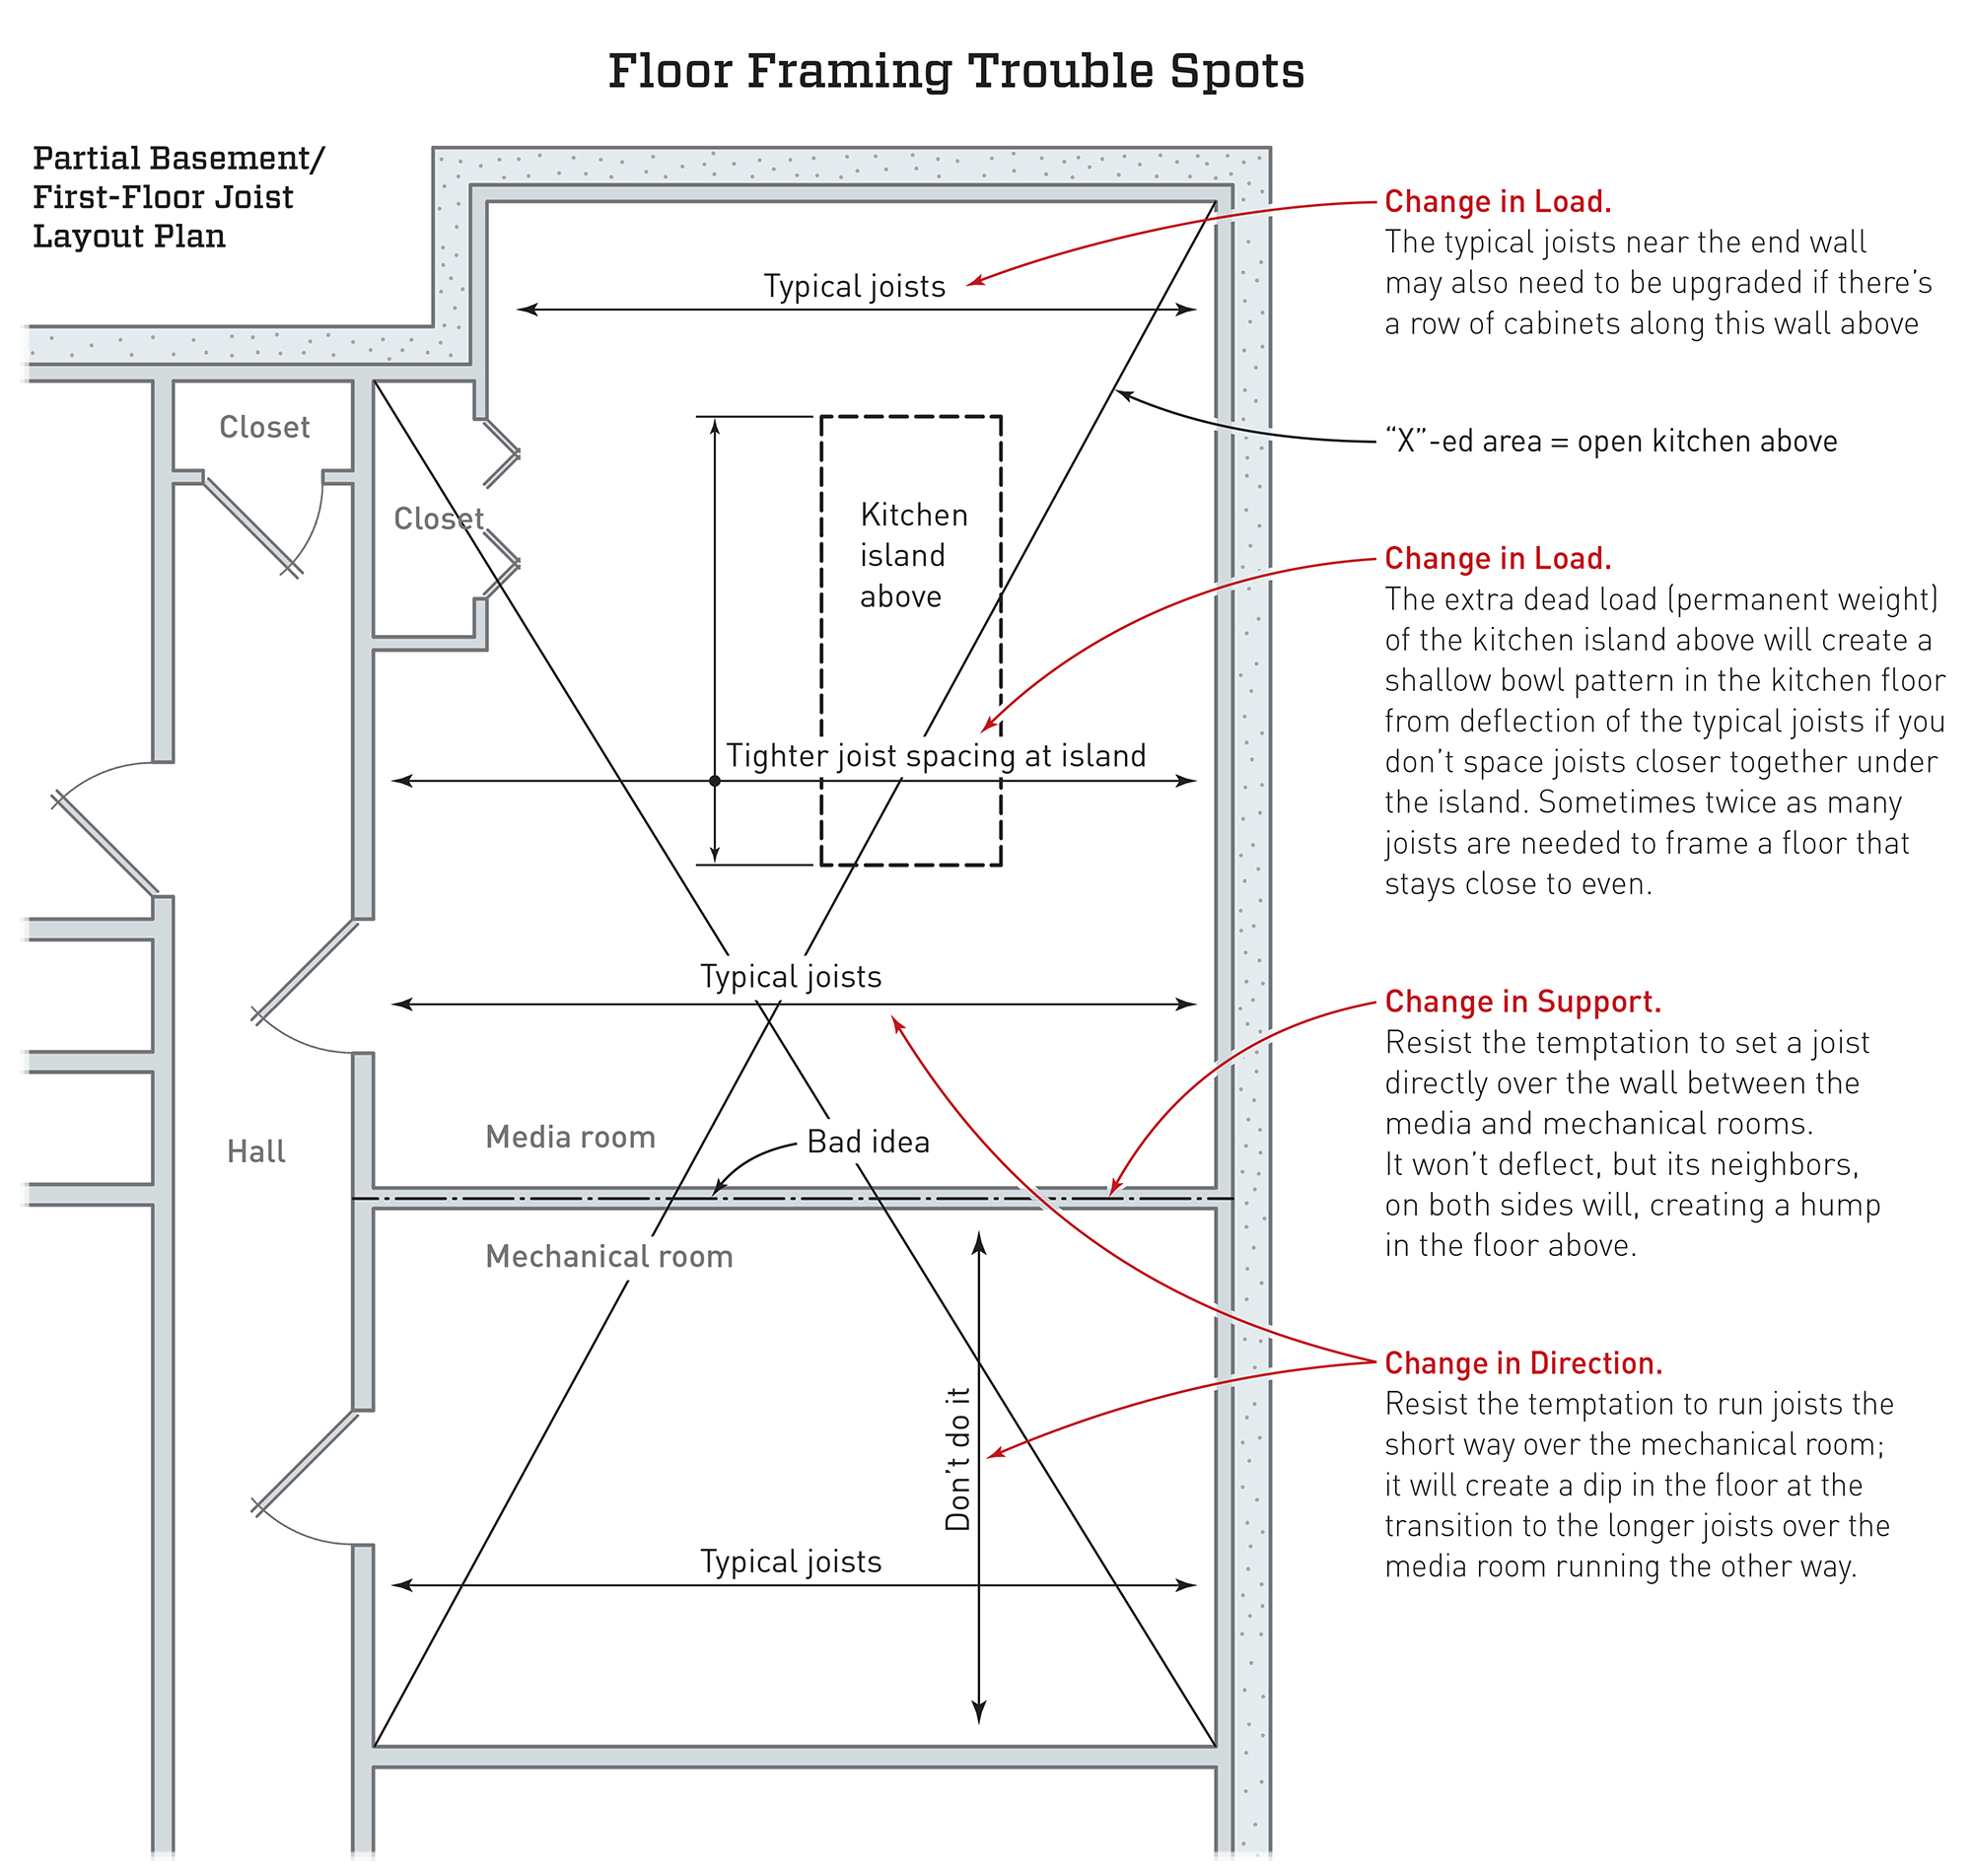 Framing Trouble Spots | JLC Online | Framing, Building Resources